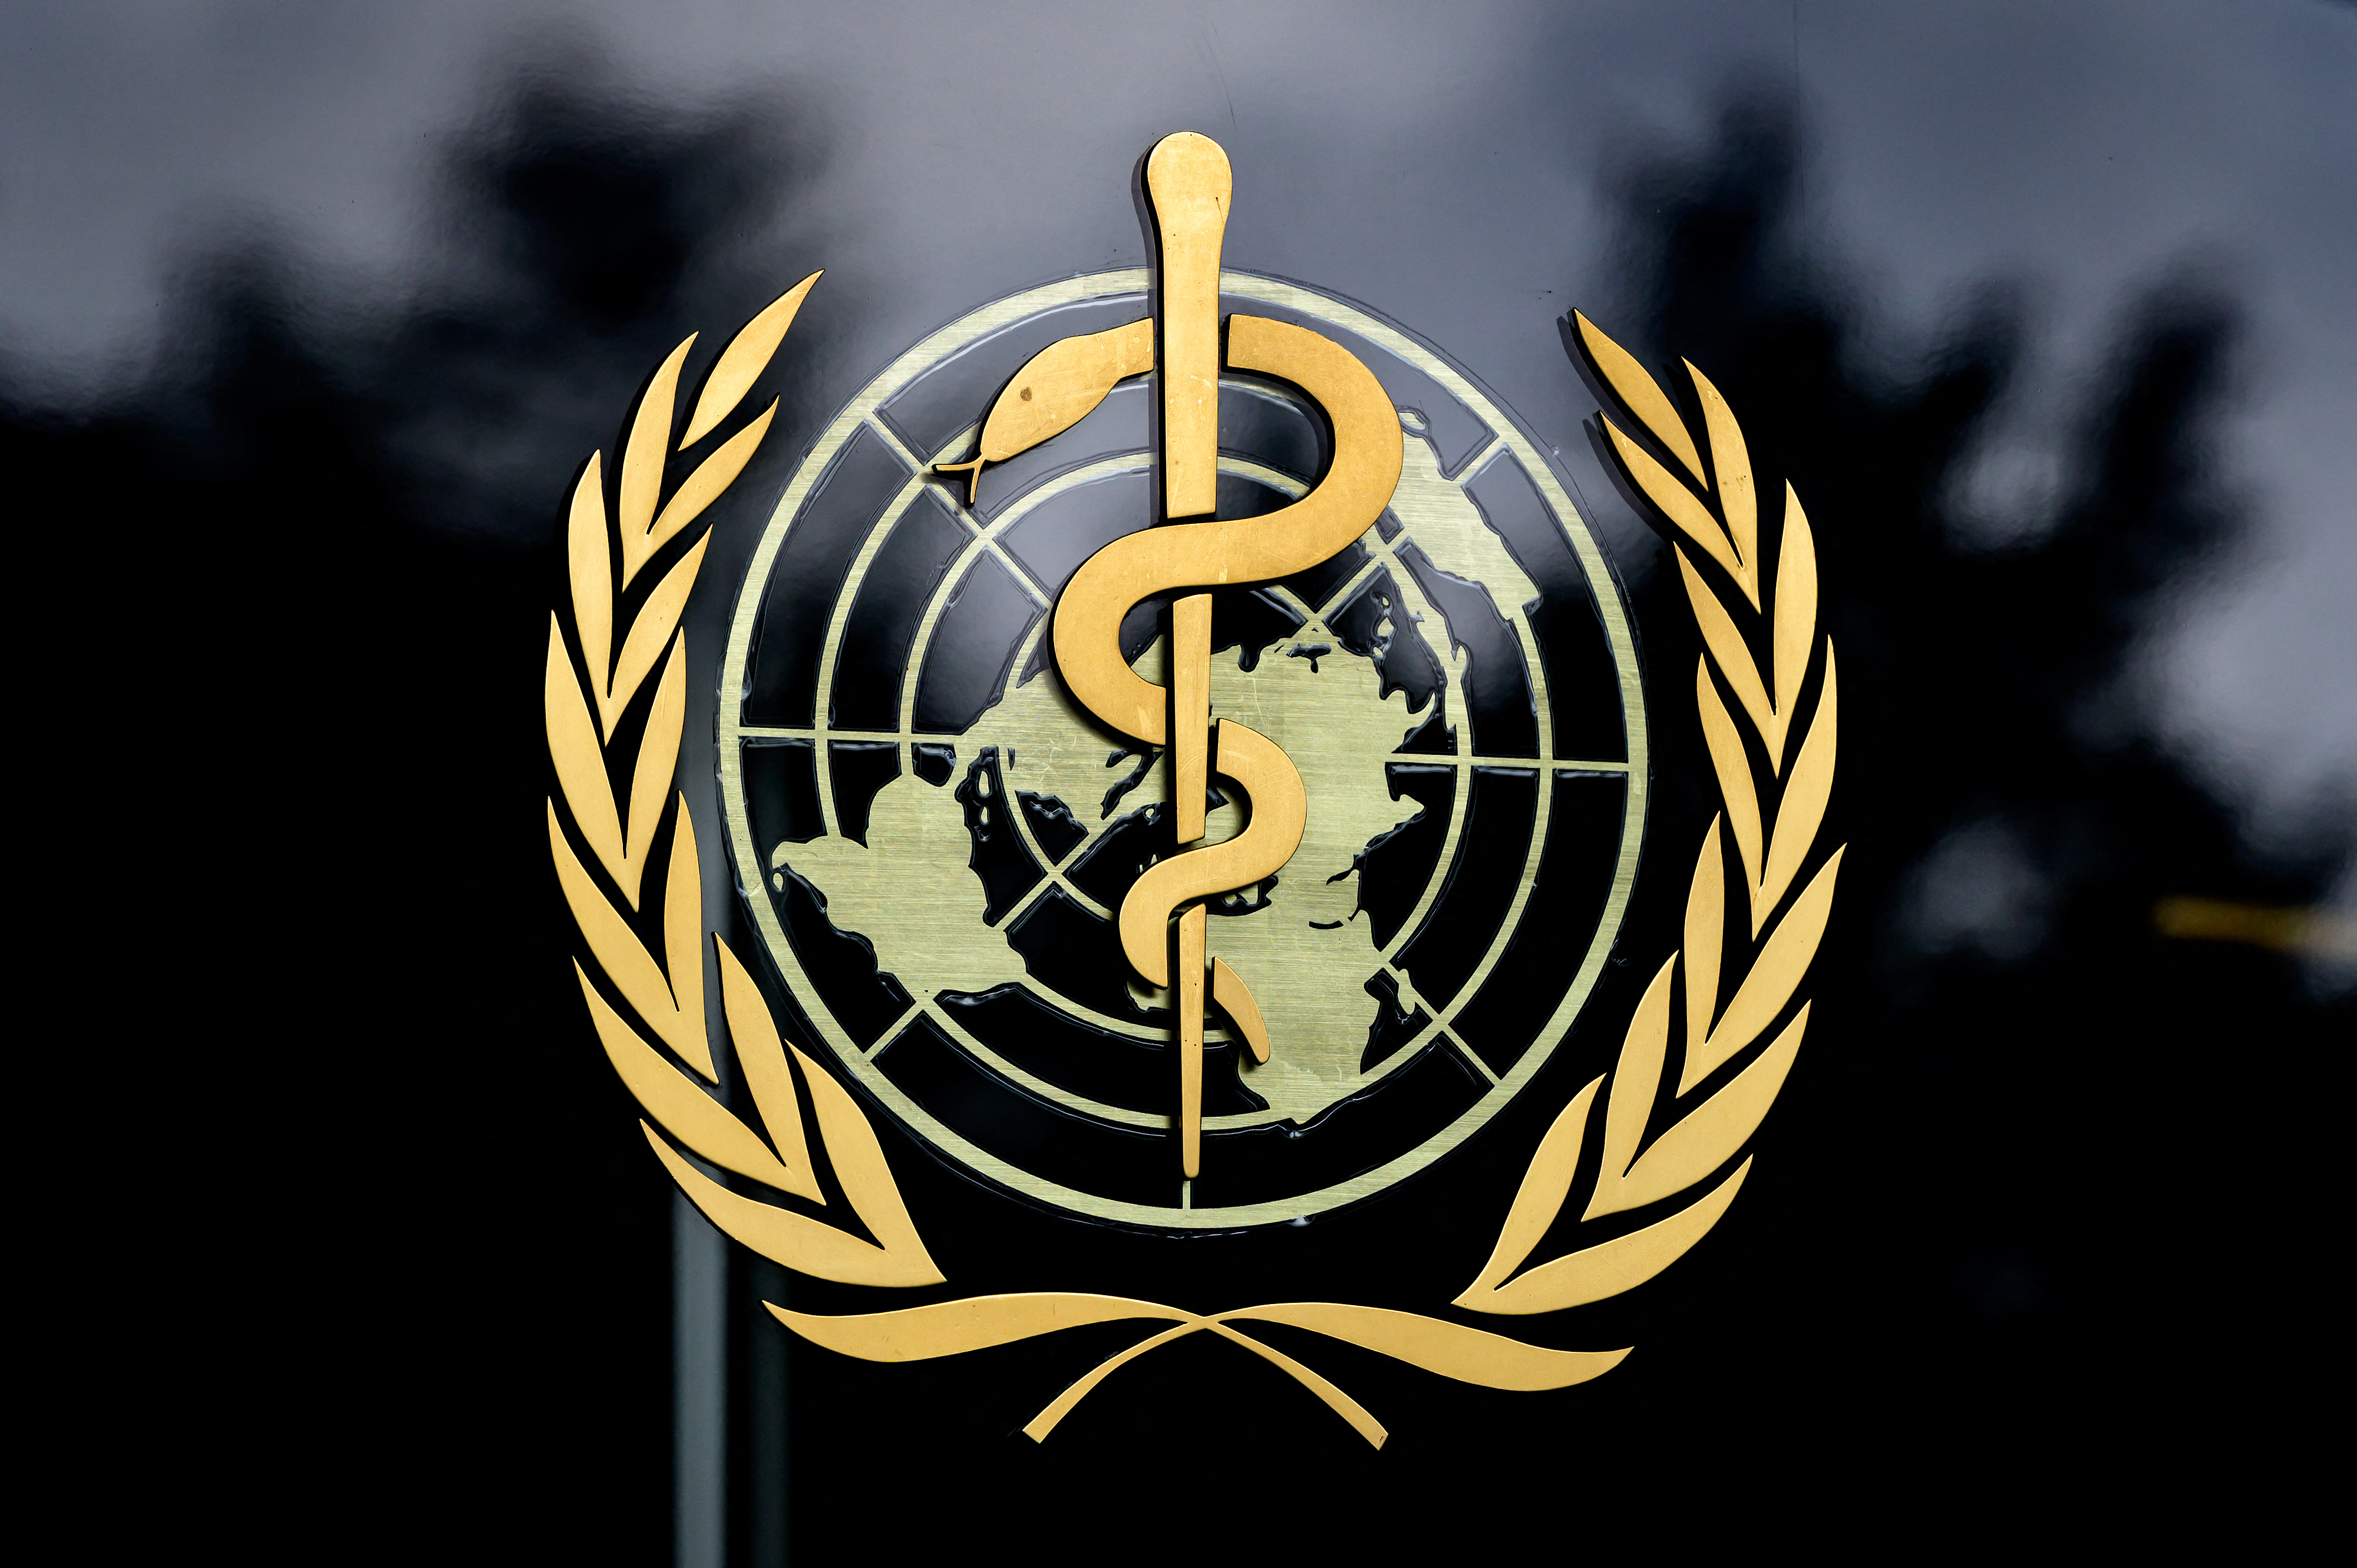 Two suspected Ebola cases in Guinea-Conakry: WHO chief